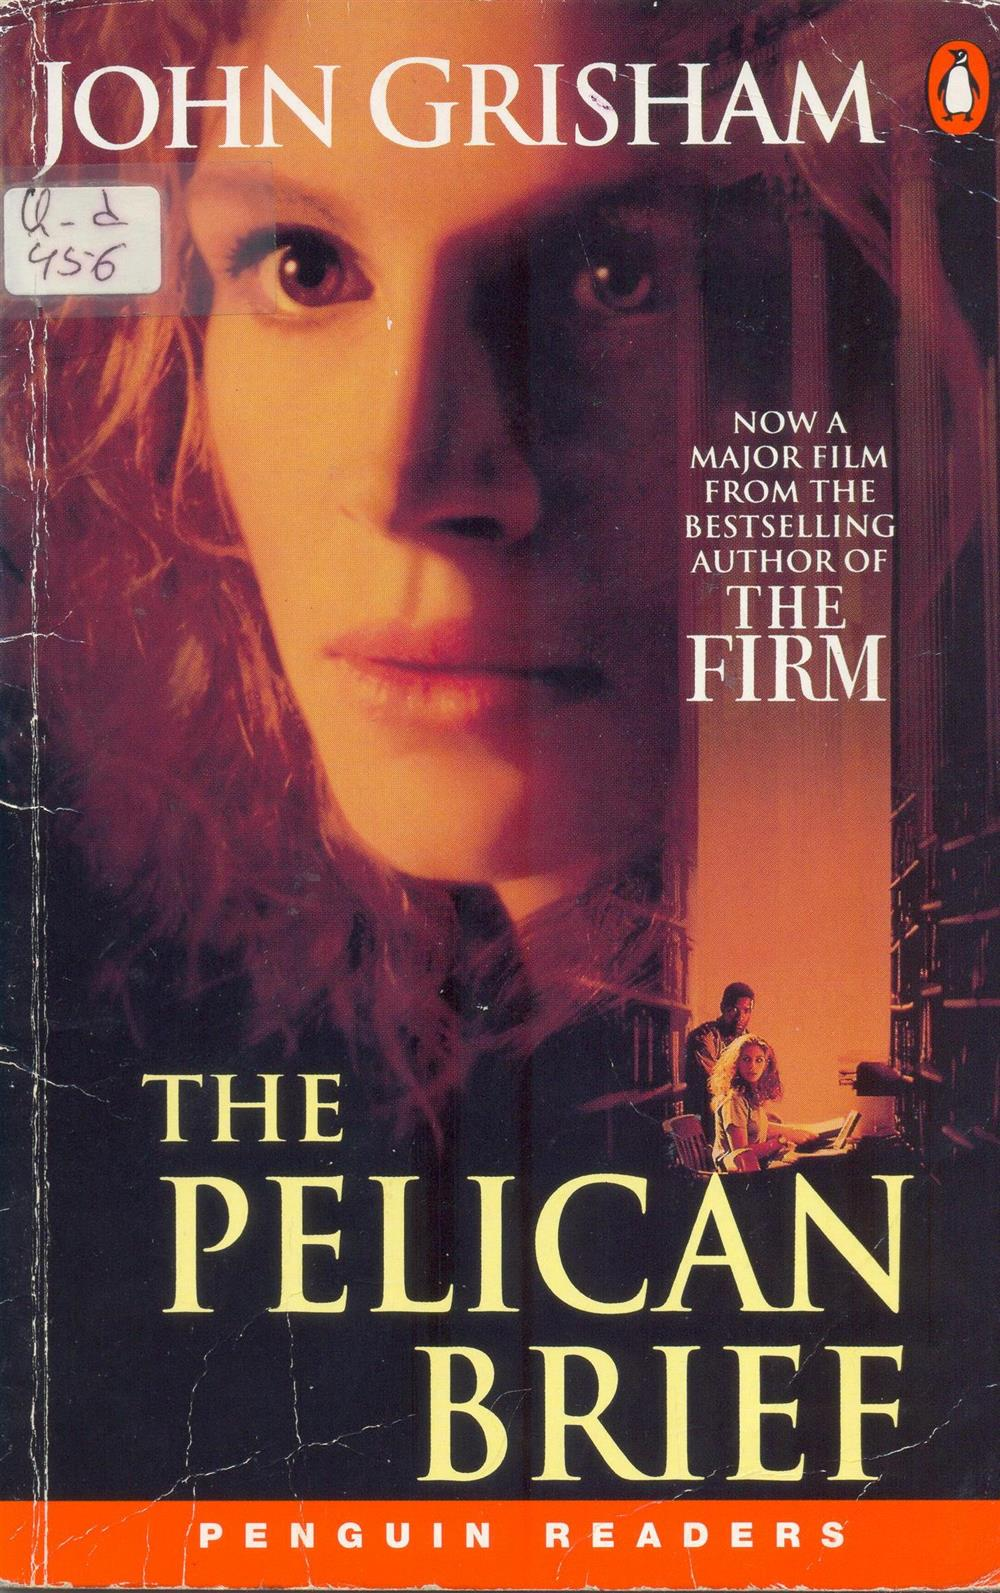 The pelican brief 001.jpg